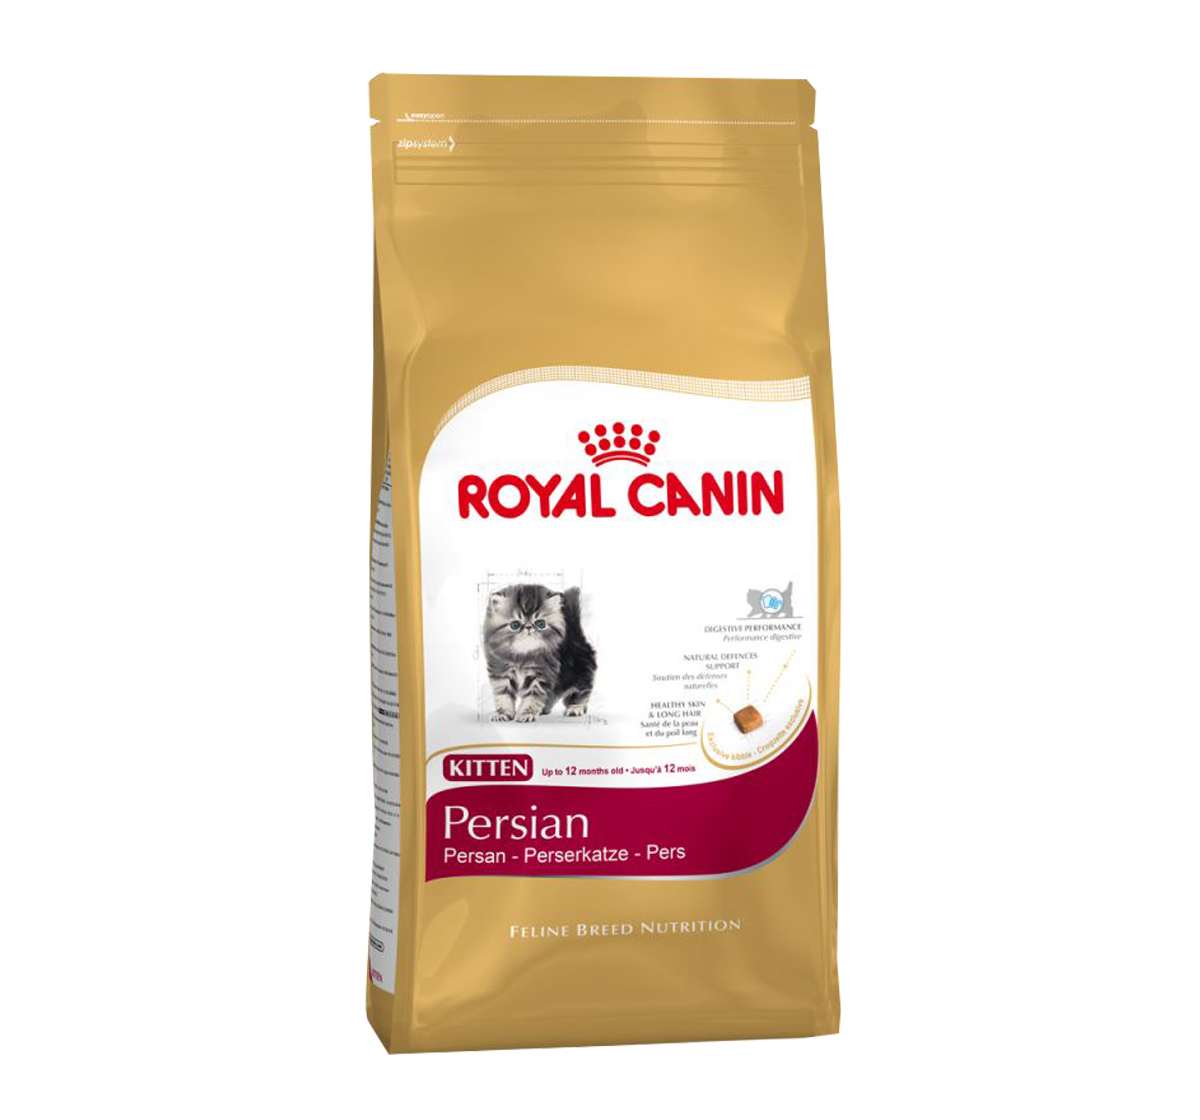 royal canin persian kitten 400 gms dry cat food. Black Bedroom Furniture Sets. Home Design Ideas